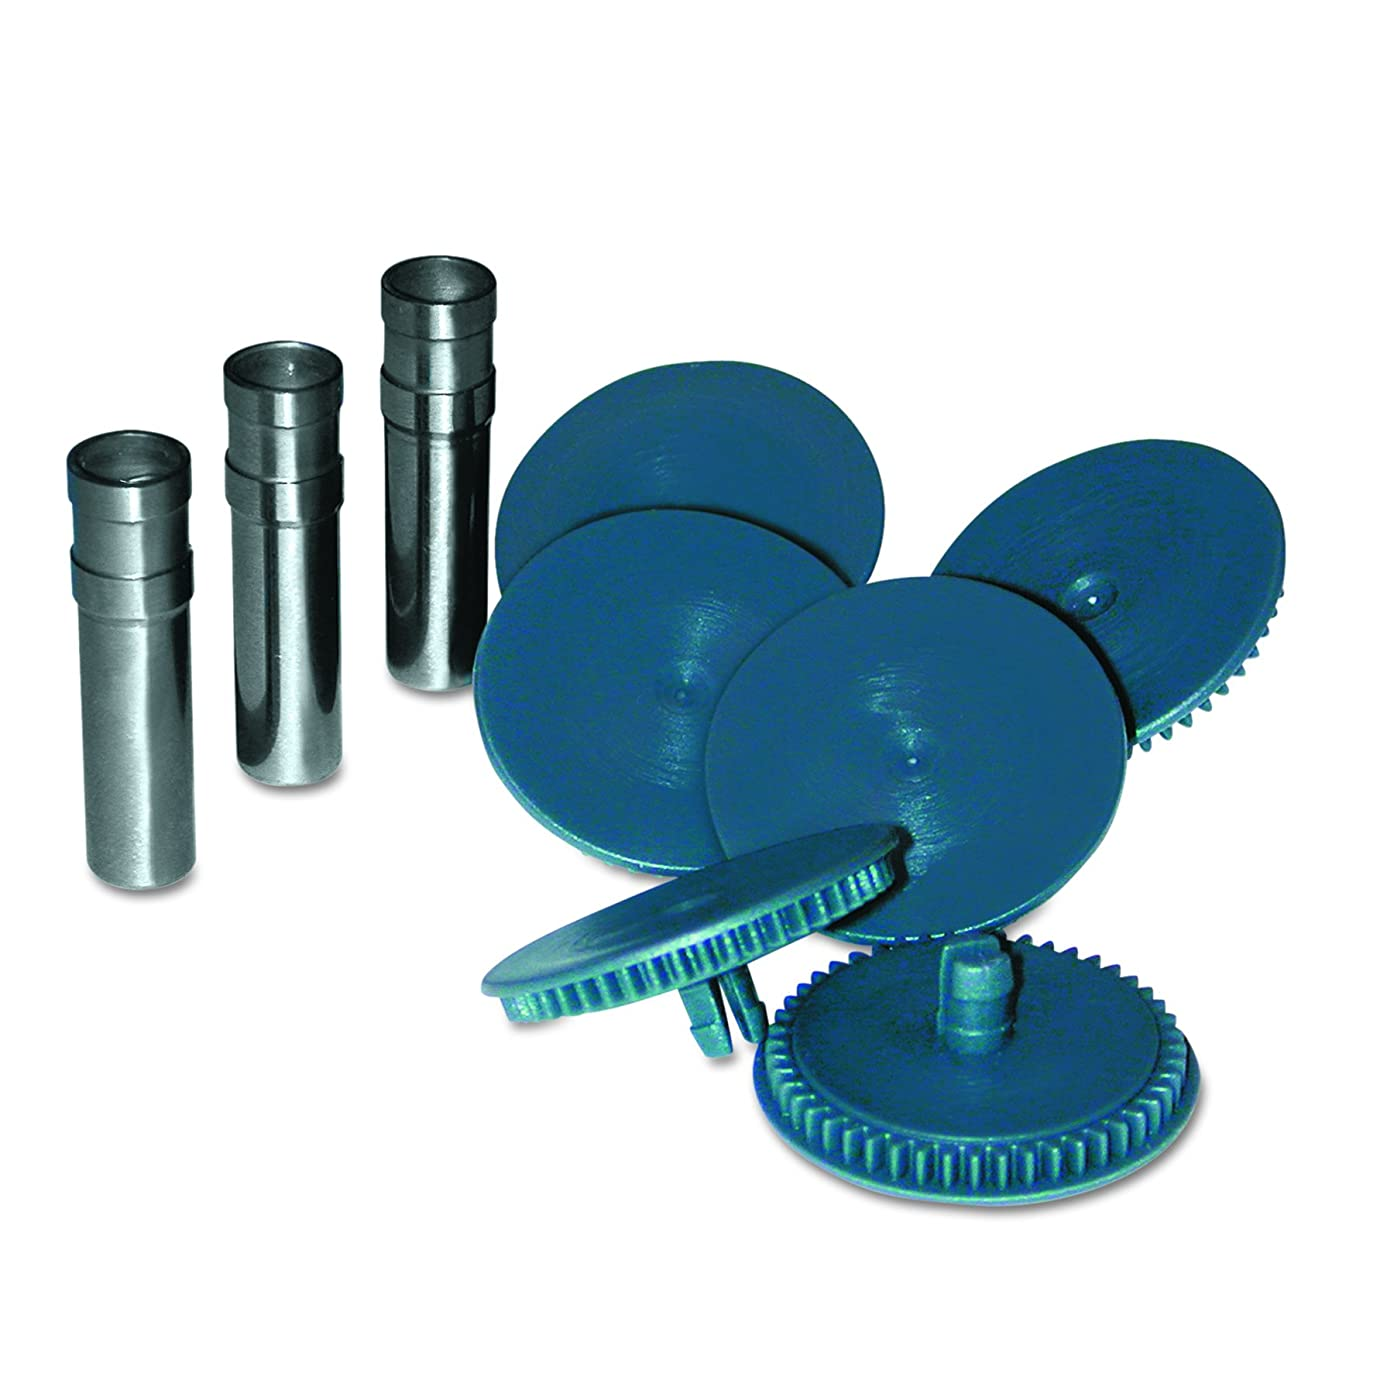 Swingline 74872 Replacement Punch Head for 160-Sheet High-Capacity Punch, 9/32 Diameter, Set of 3 Replacement Heads and 6 Discs